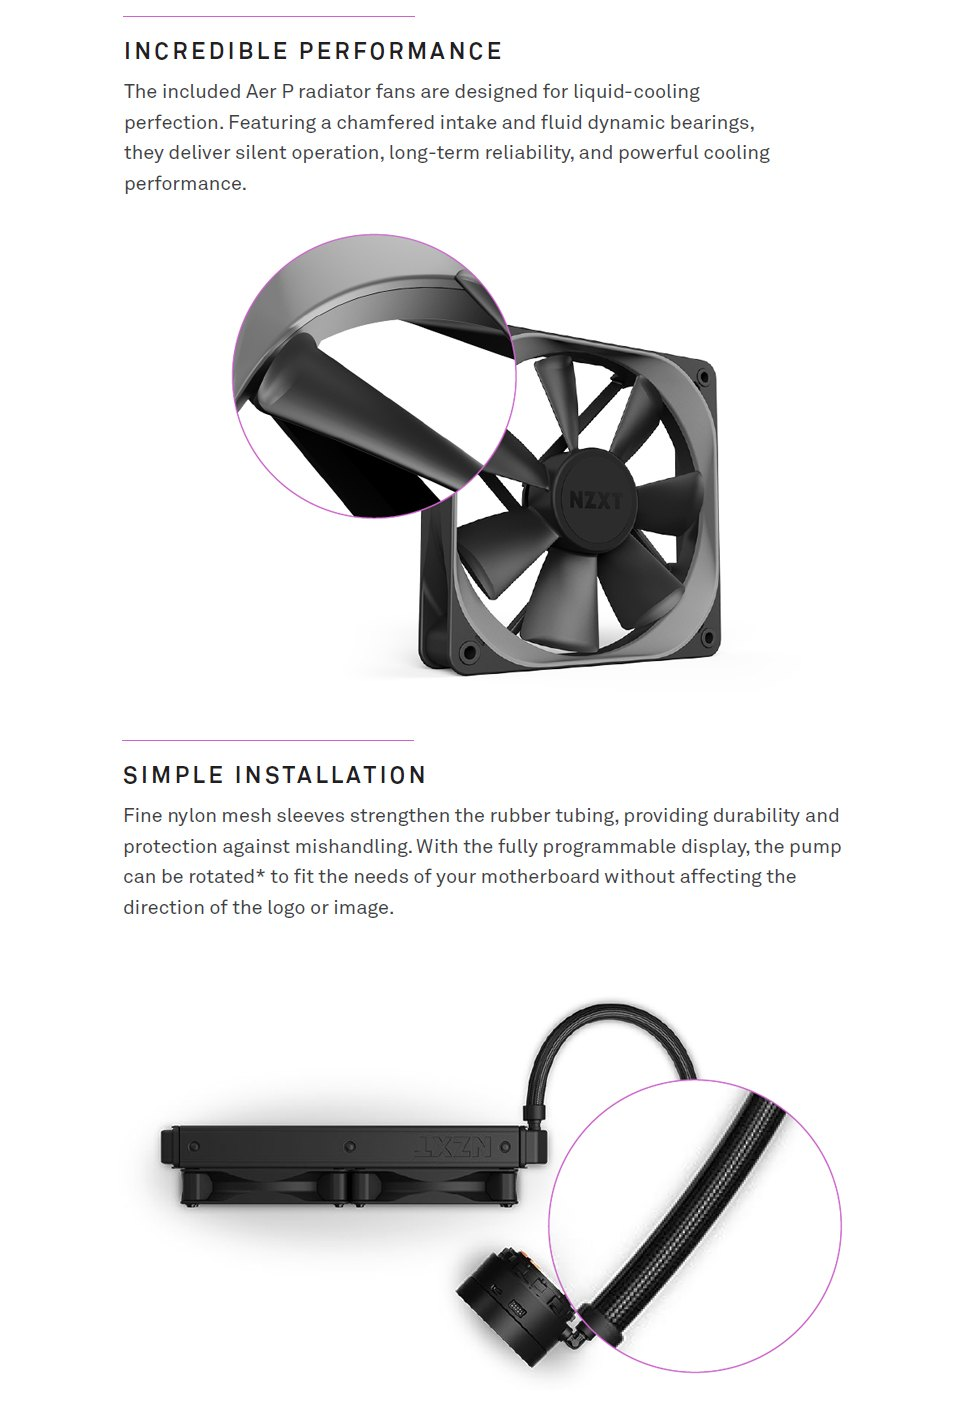 NZXT Kraken Z73 360mm AIO Liquid CPU Cooler features 3